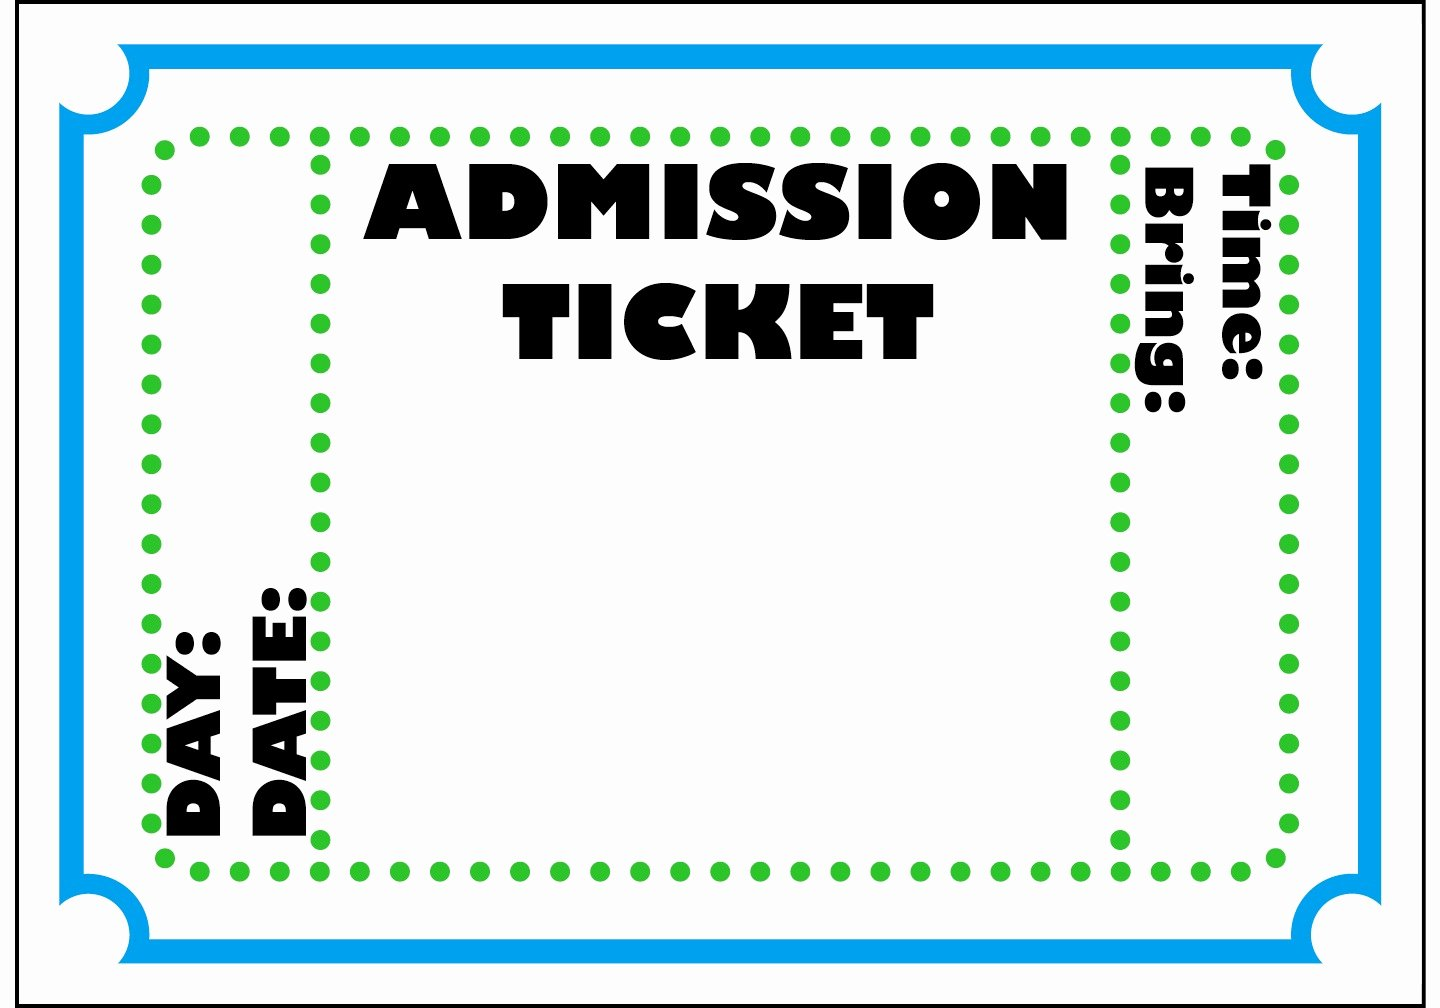 Movie Ticket Template Word Luxury Admit E Ticket Template Example Mughals